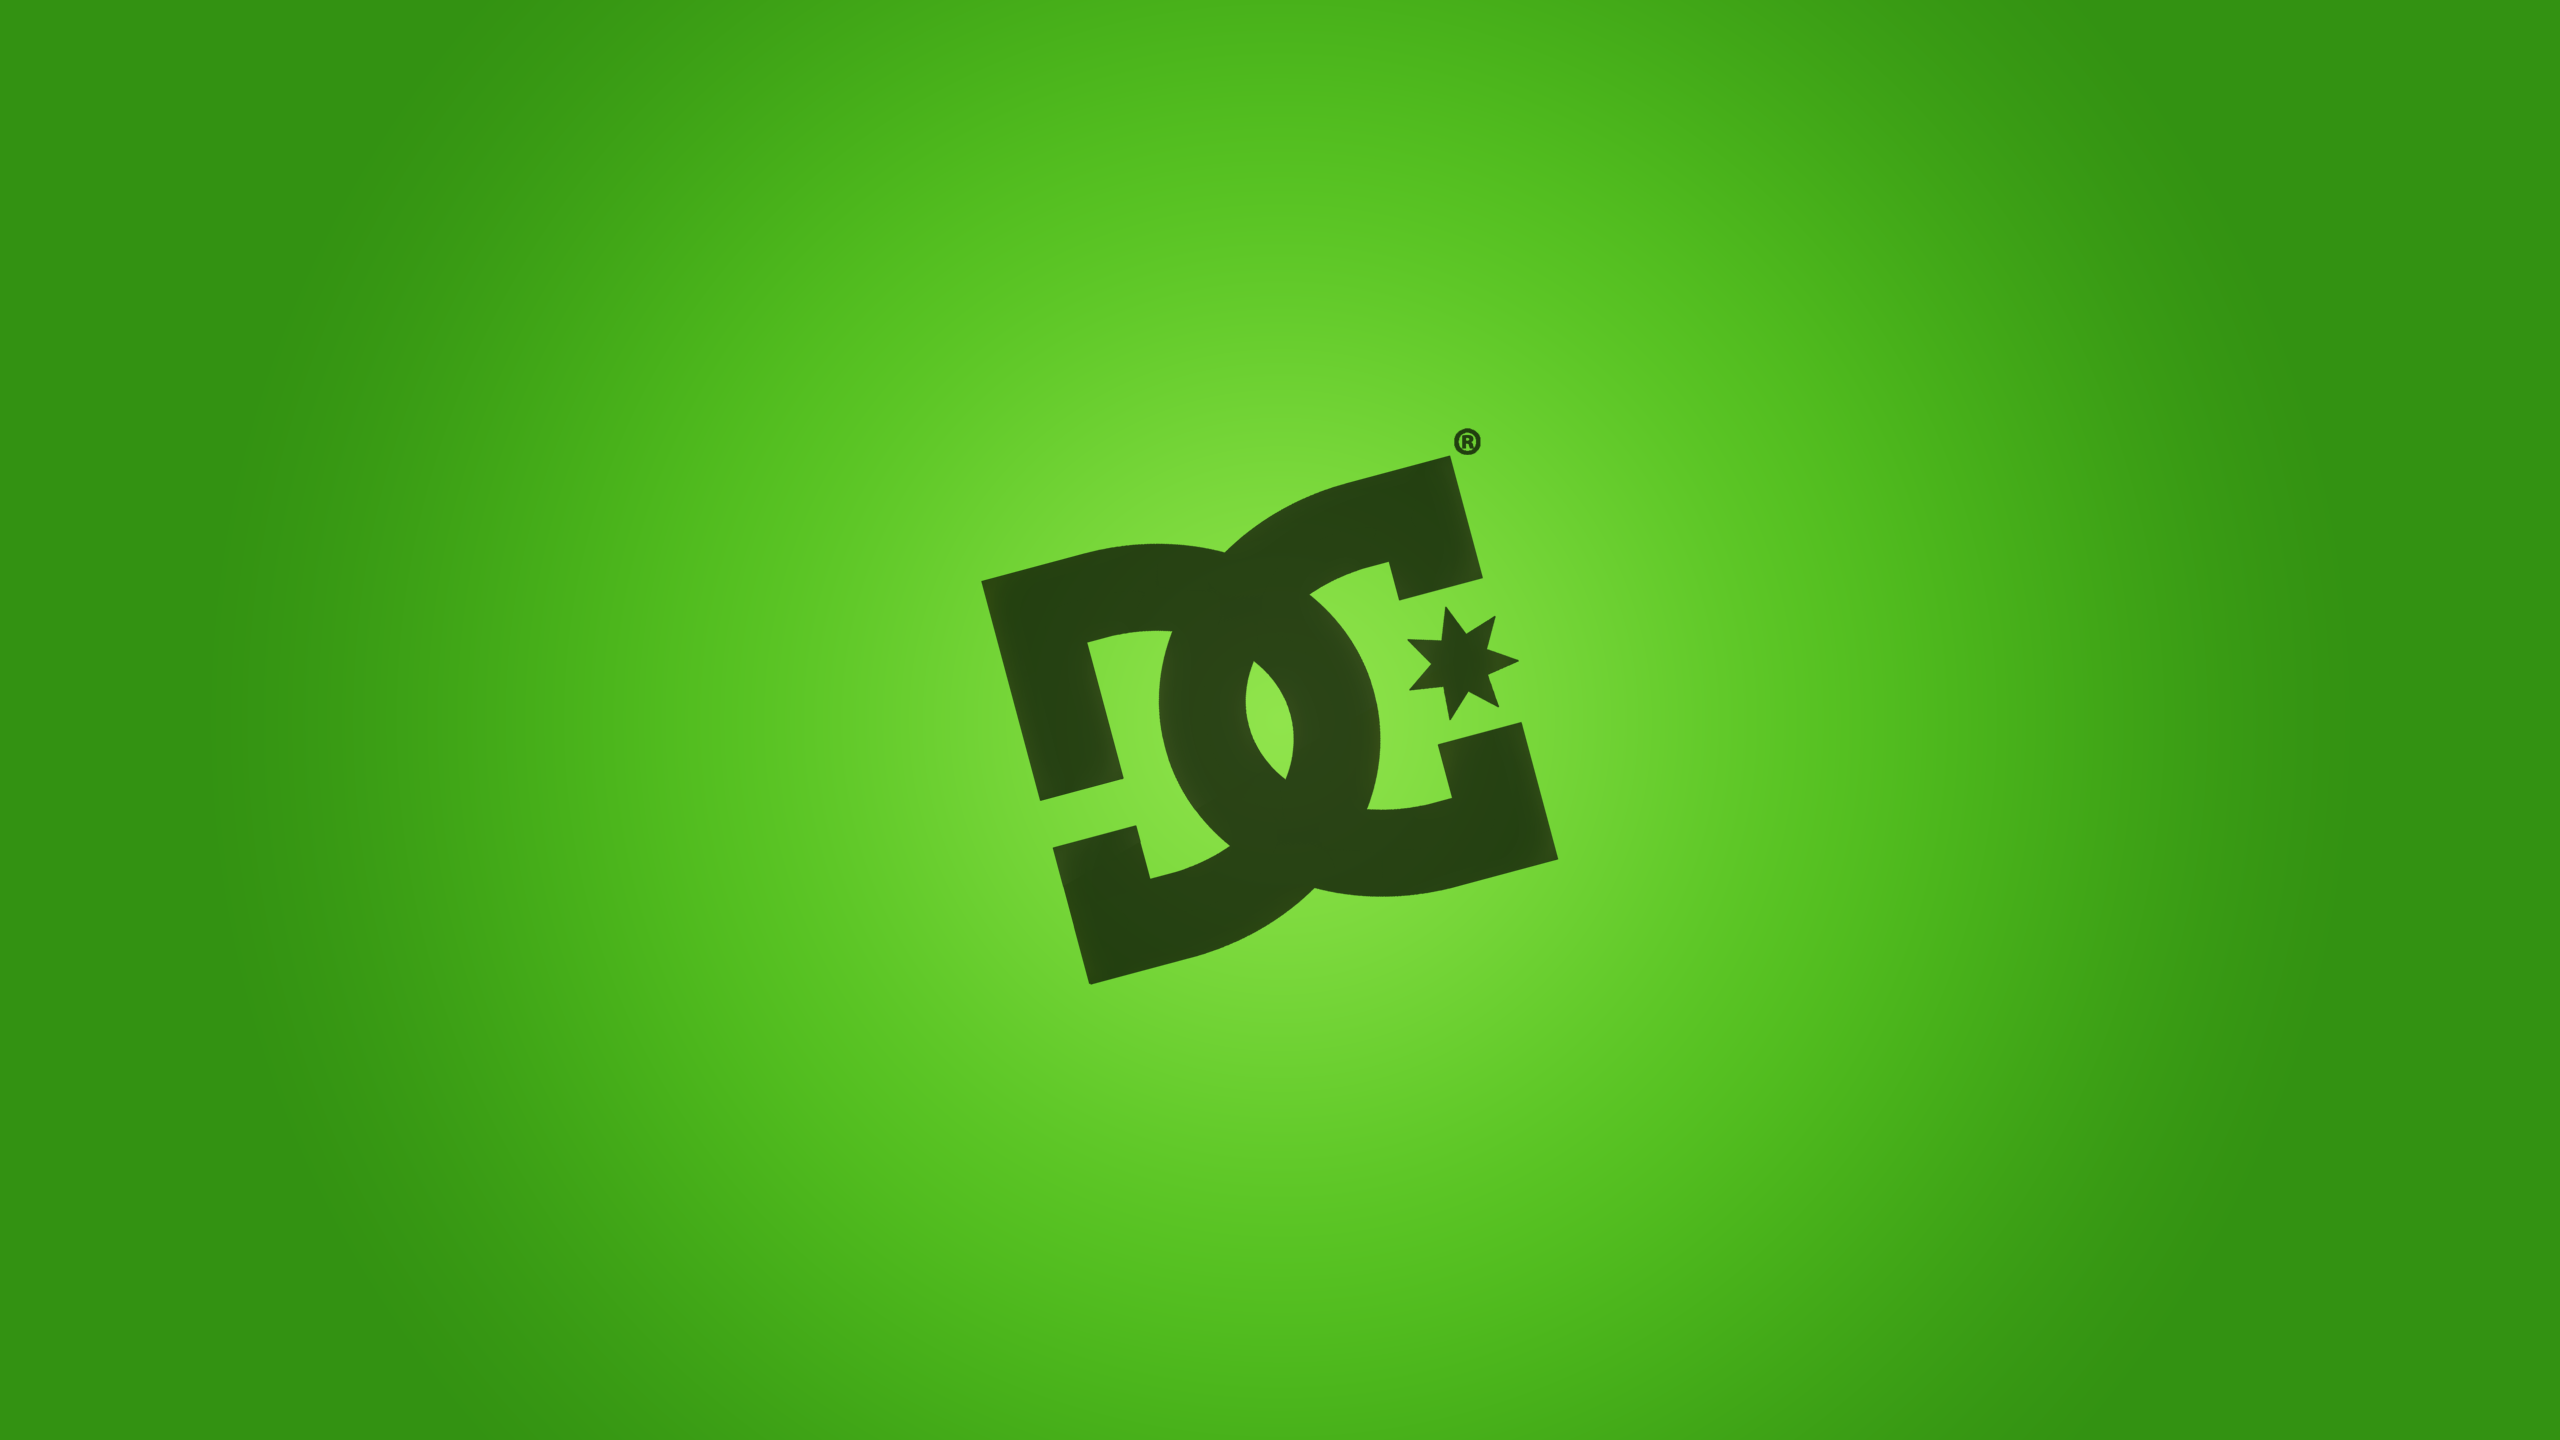 Green Backgrounds And Wallpapers DC Shoes Logo Masculino